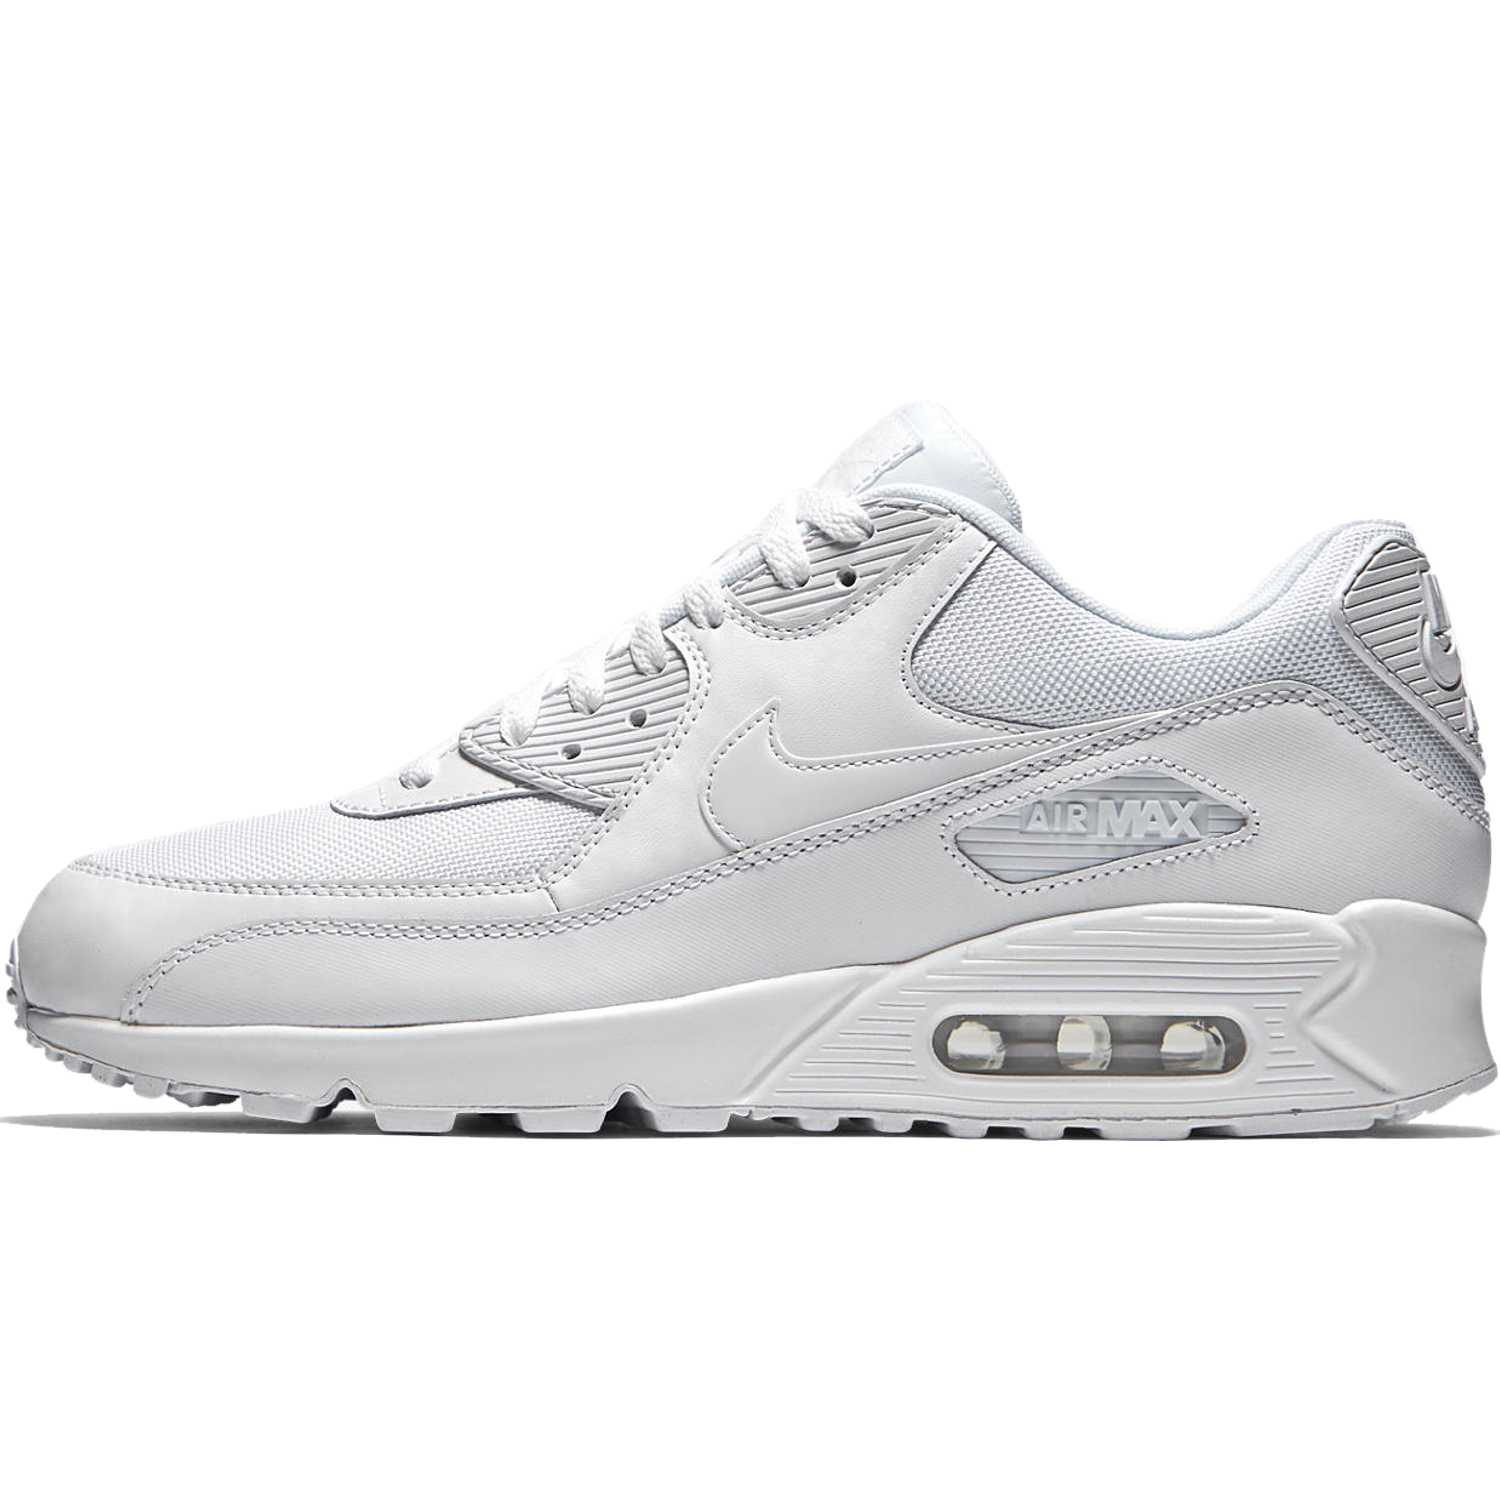 factory authentic ca69d 37494 ... BUTY MĘSKIE LIFESTYLE NIKE AIR MAX 90 ESSENTIAL BIAŁE 537384-111 ...